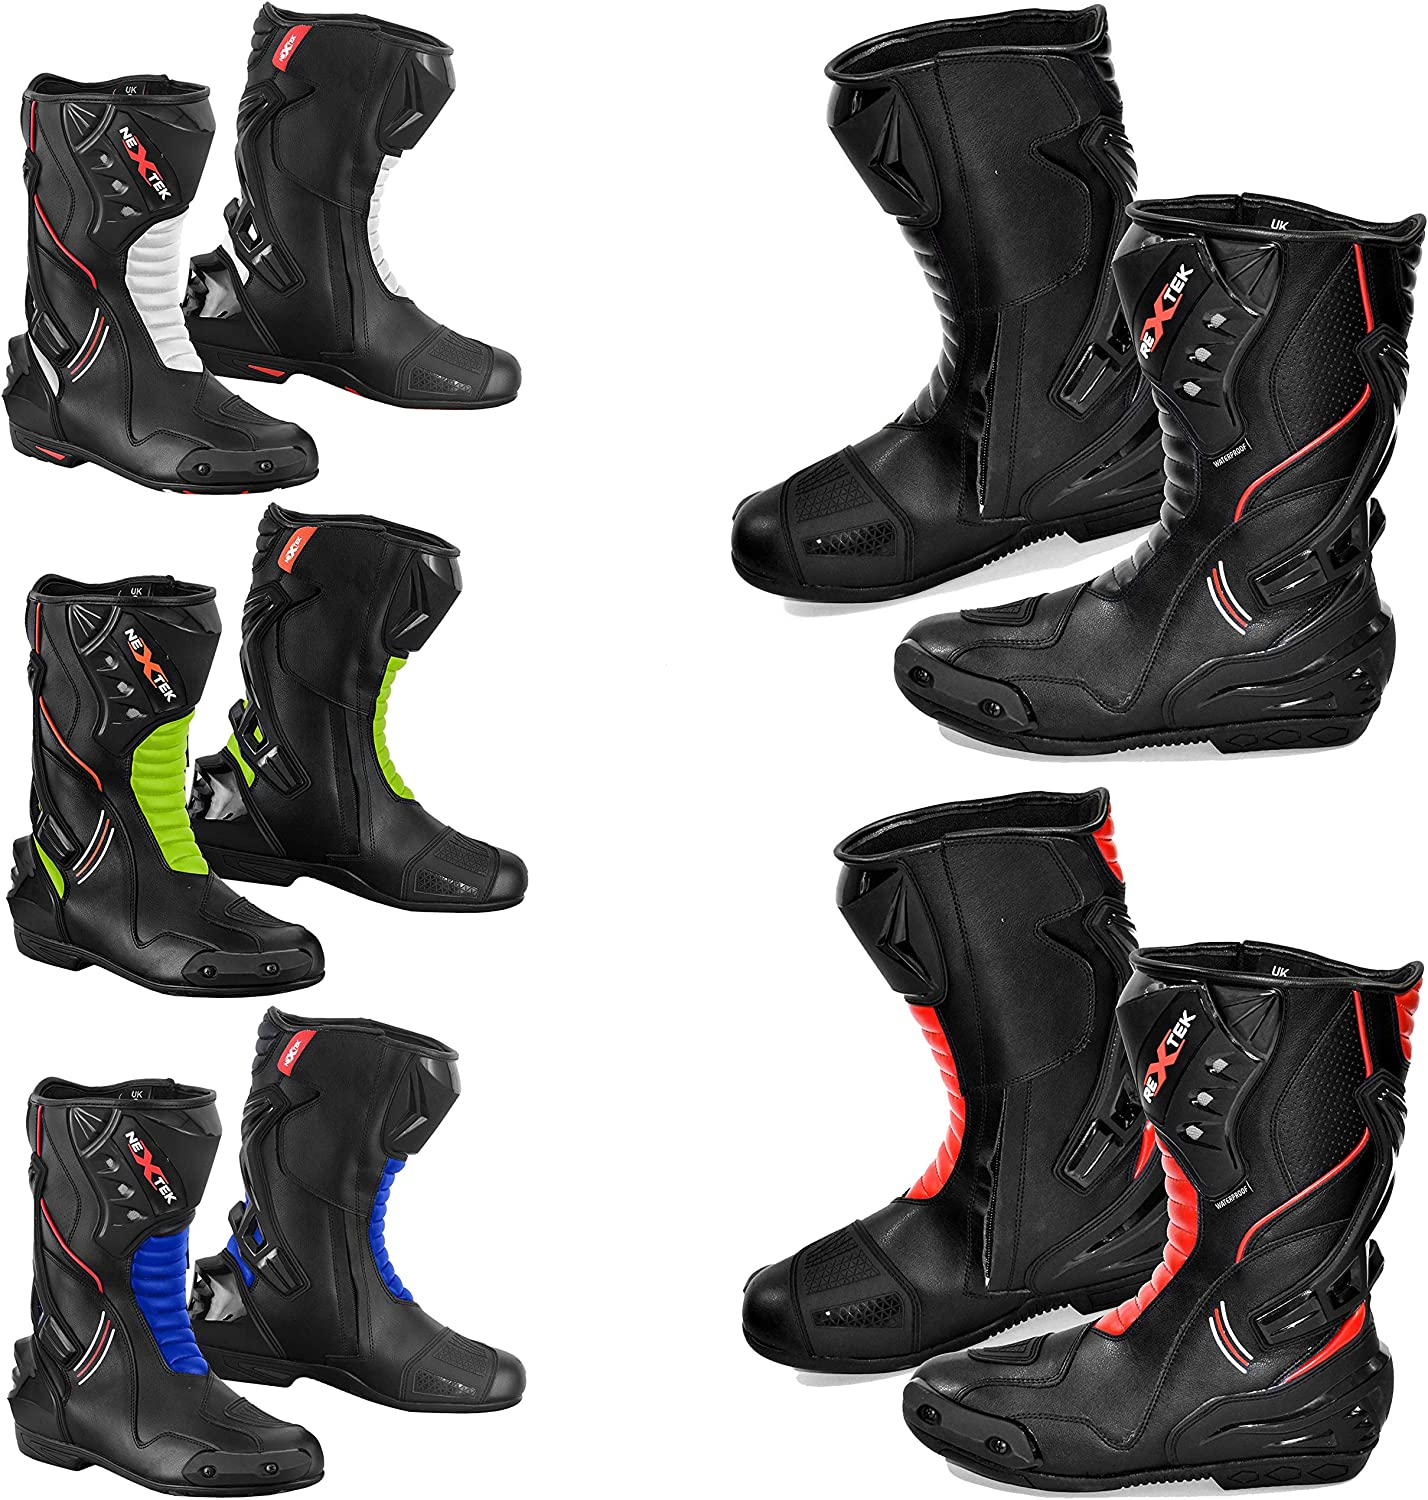 UK 11 PROFIRST 100/% Genuine Leather Waterproof Motorbike Boots Off Road Adventure Touring Motorcycle Shoes High Long Ankle Casual Racing Sports Touring Cruise Full Black EU 45